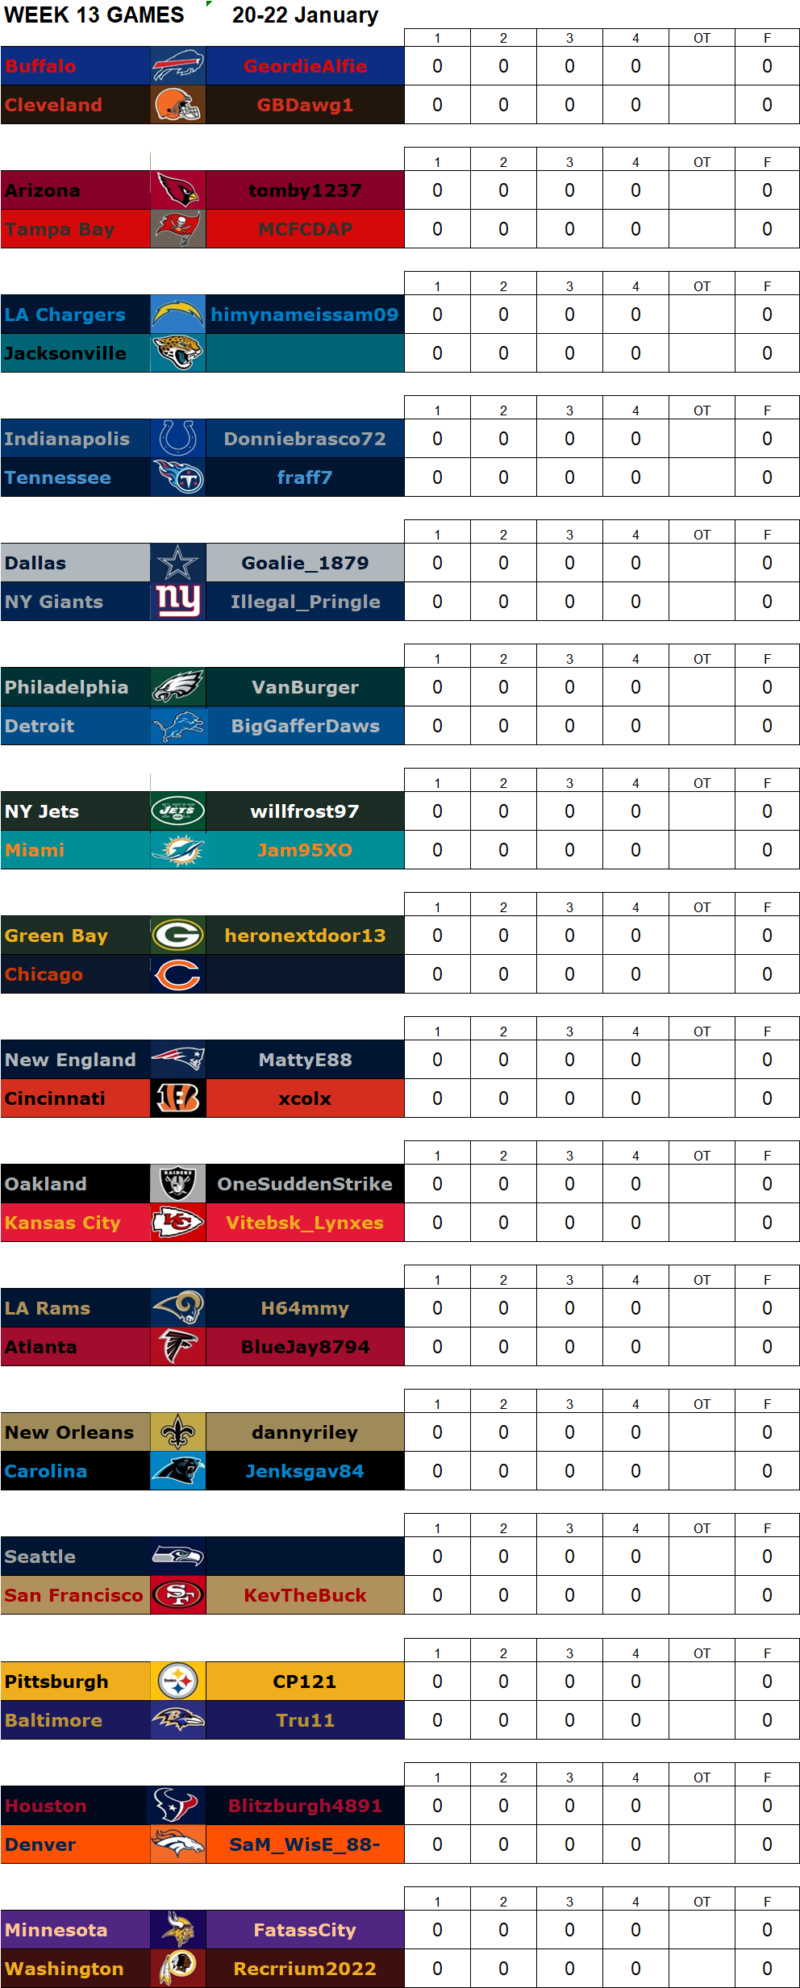 Week 13 Matchups, 20-22 January **Amended** W13g15